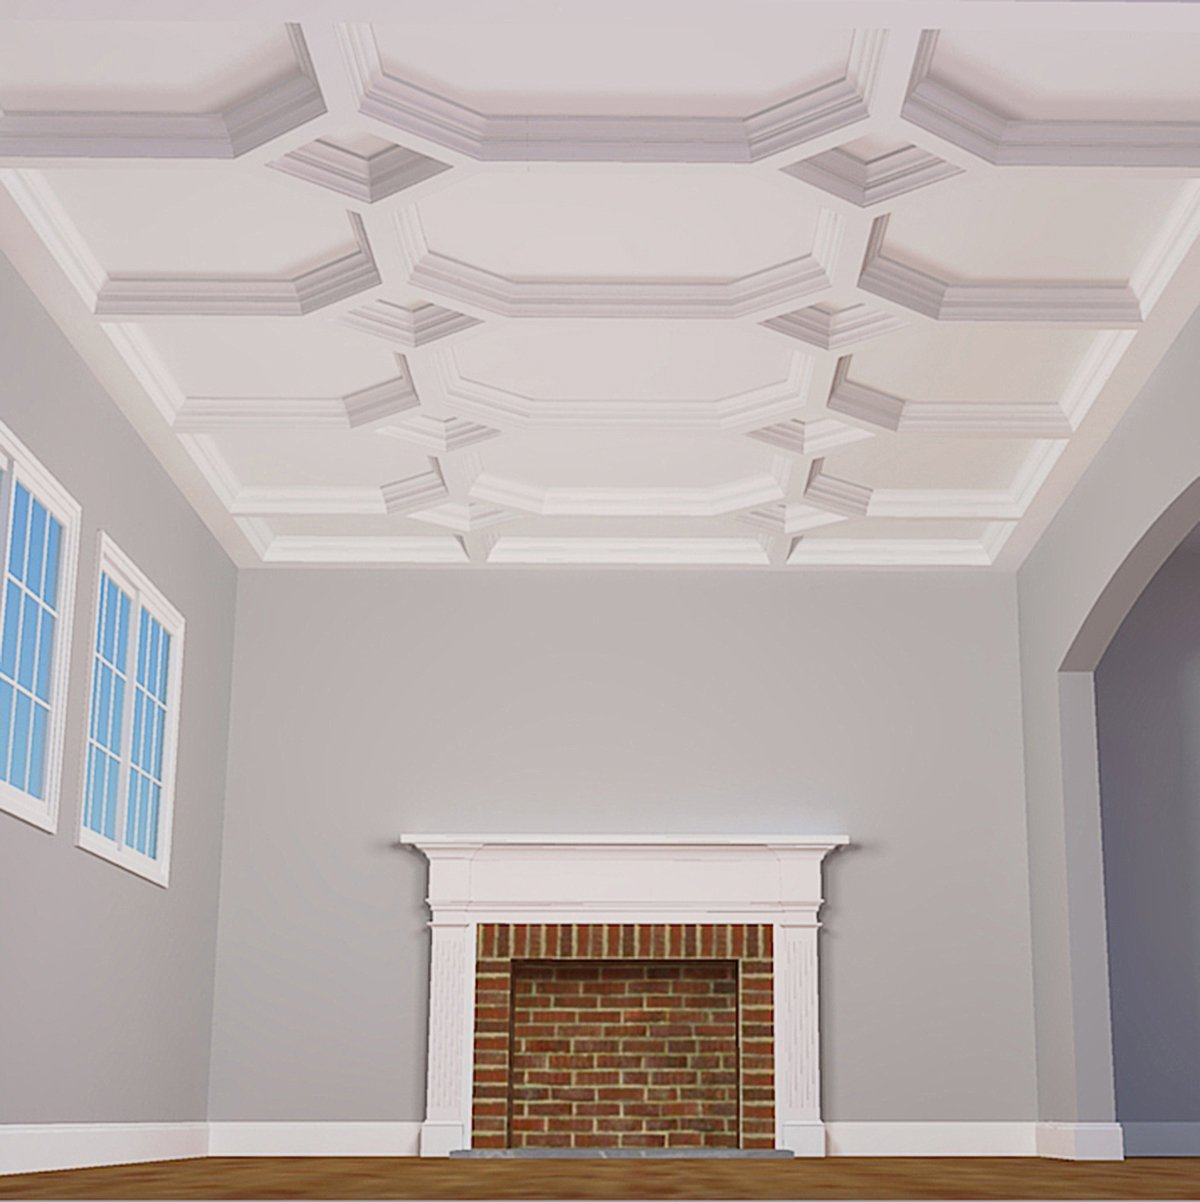 Kit Ekena Millwork CC08PIC04X14X14DE 14W x 4P x 14L Perimeter Inside Corner for 8 Deluxe Coffered Ceiling System